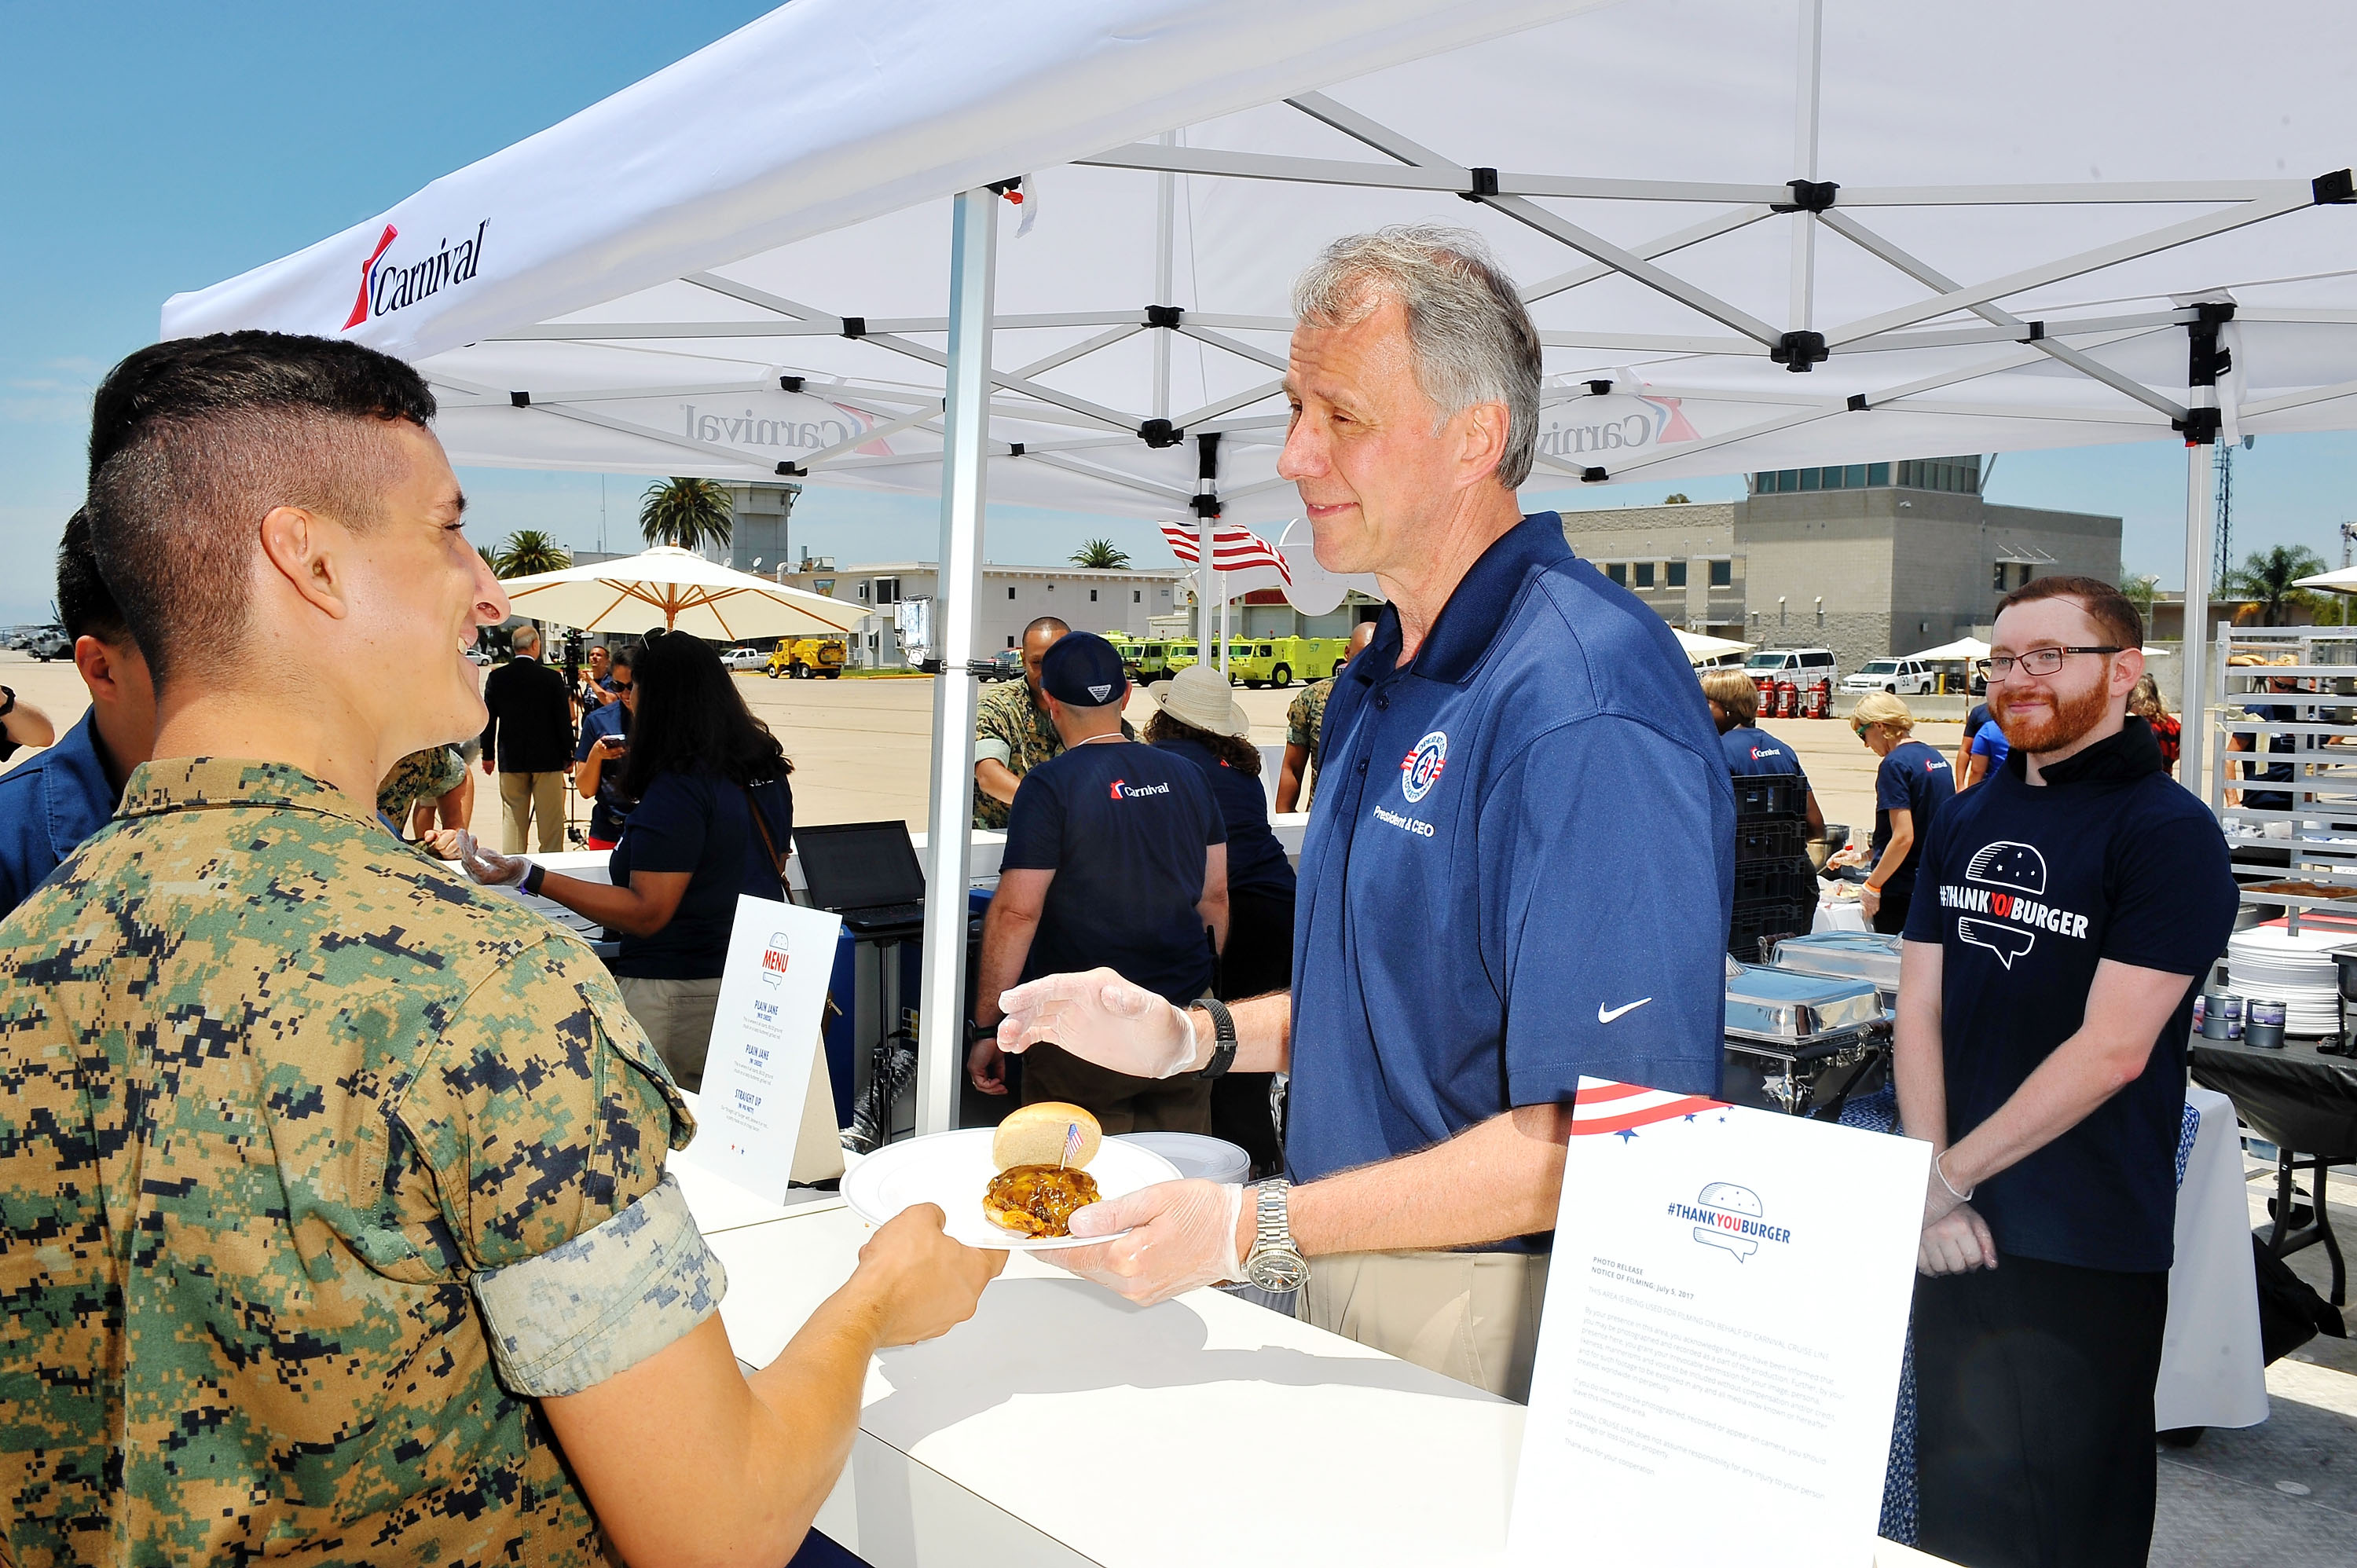 Carnival Cruise Line Thanks the Troops with the World's First Social Media Powered Barbecue at Marine Corps Air Station Miramar in San Diego